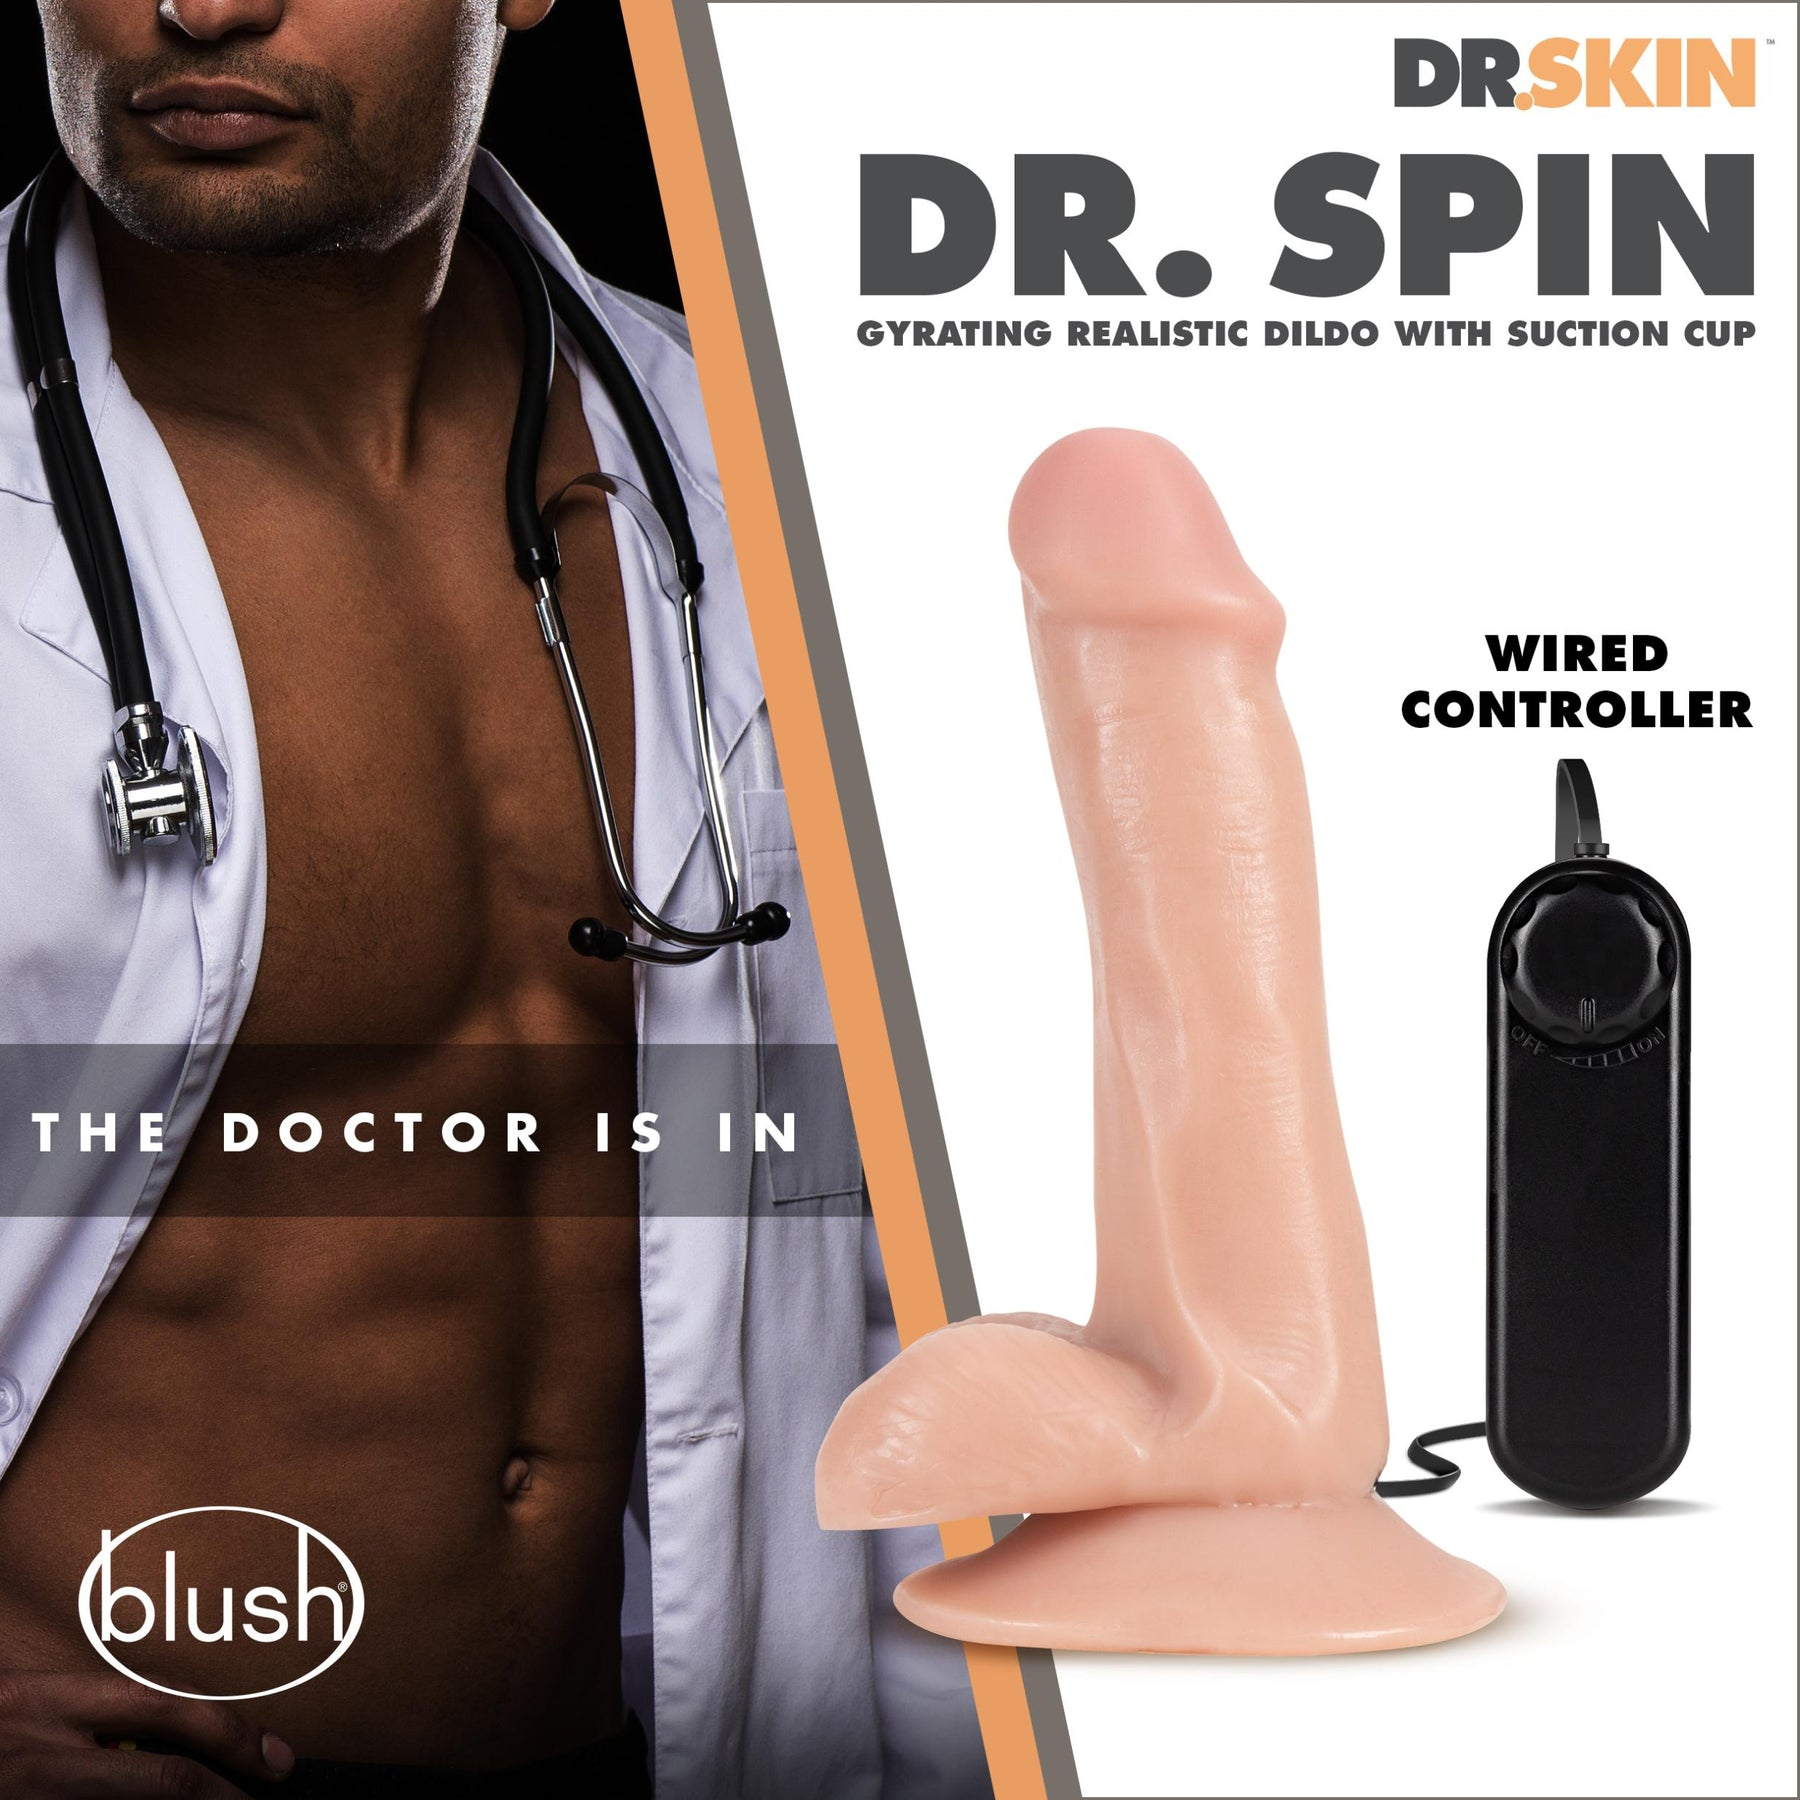 Dr. Skin - Dr. Spin - 6 Inch Gyrating Realistic Dildo - Vanilla